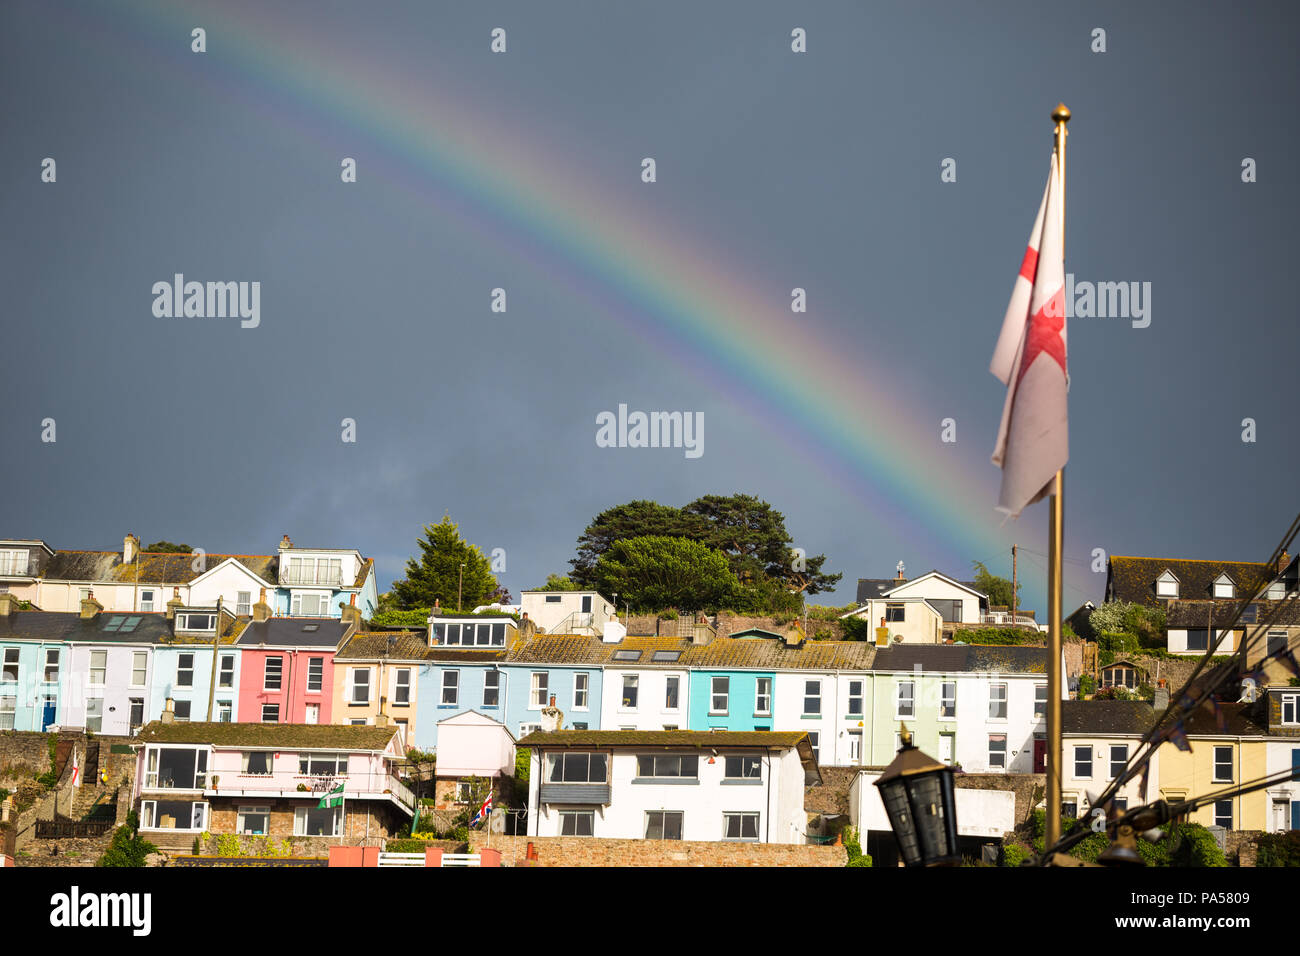 Colourful seaside homes with dark sky and rainbow, with St. Georges Cross English flag, Brixham, Devon - Stock Image